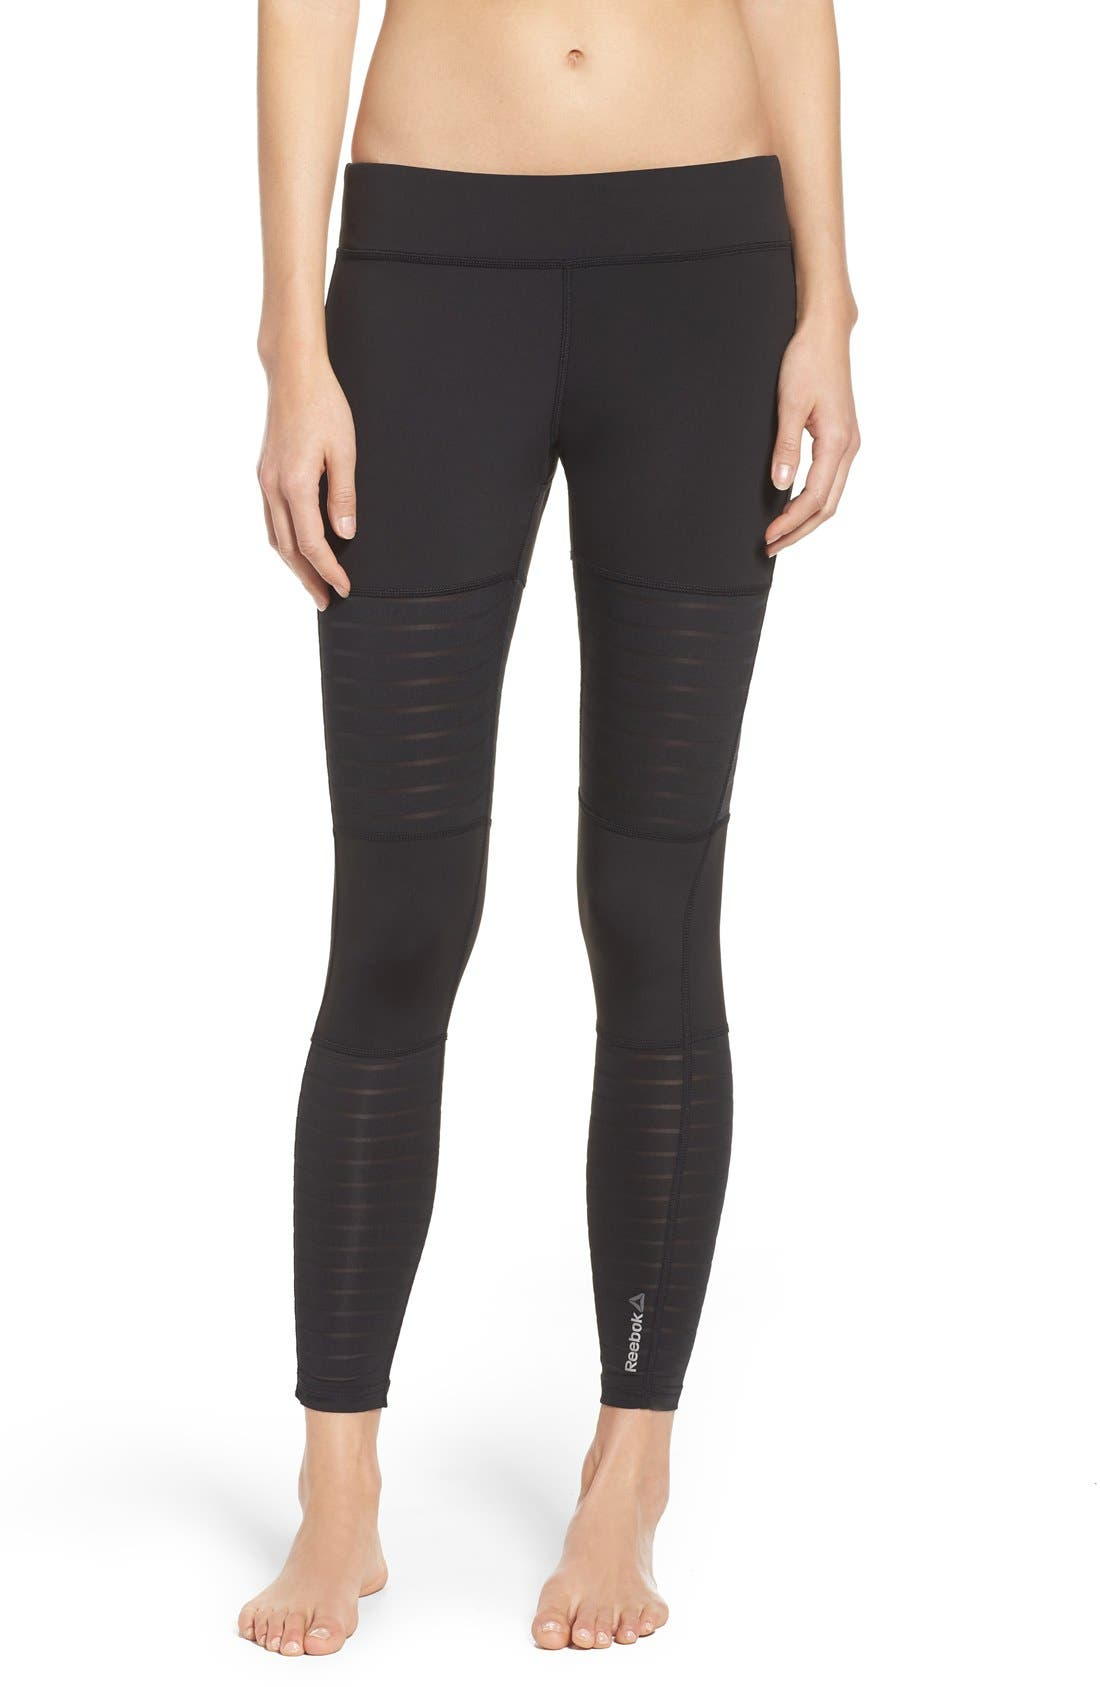 Dance Mesh Leggings,                         Main,                         color, Black